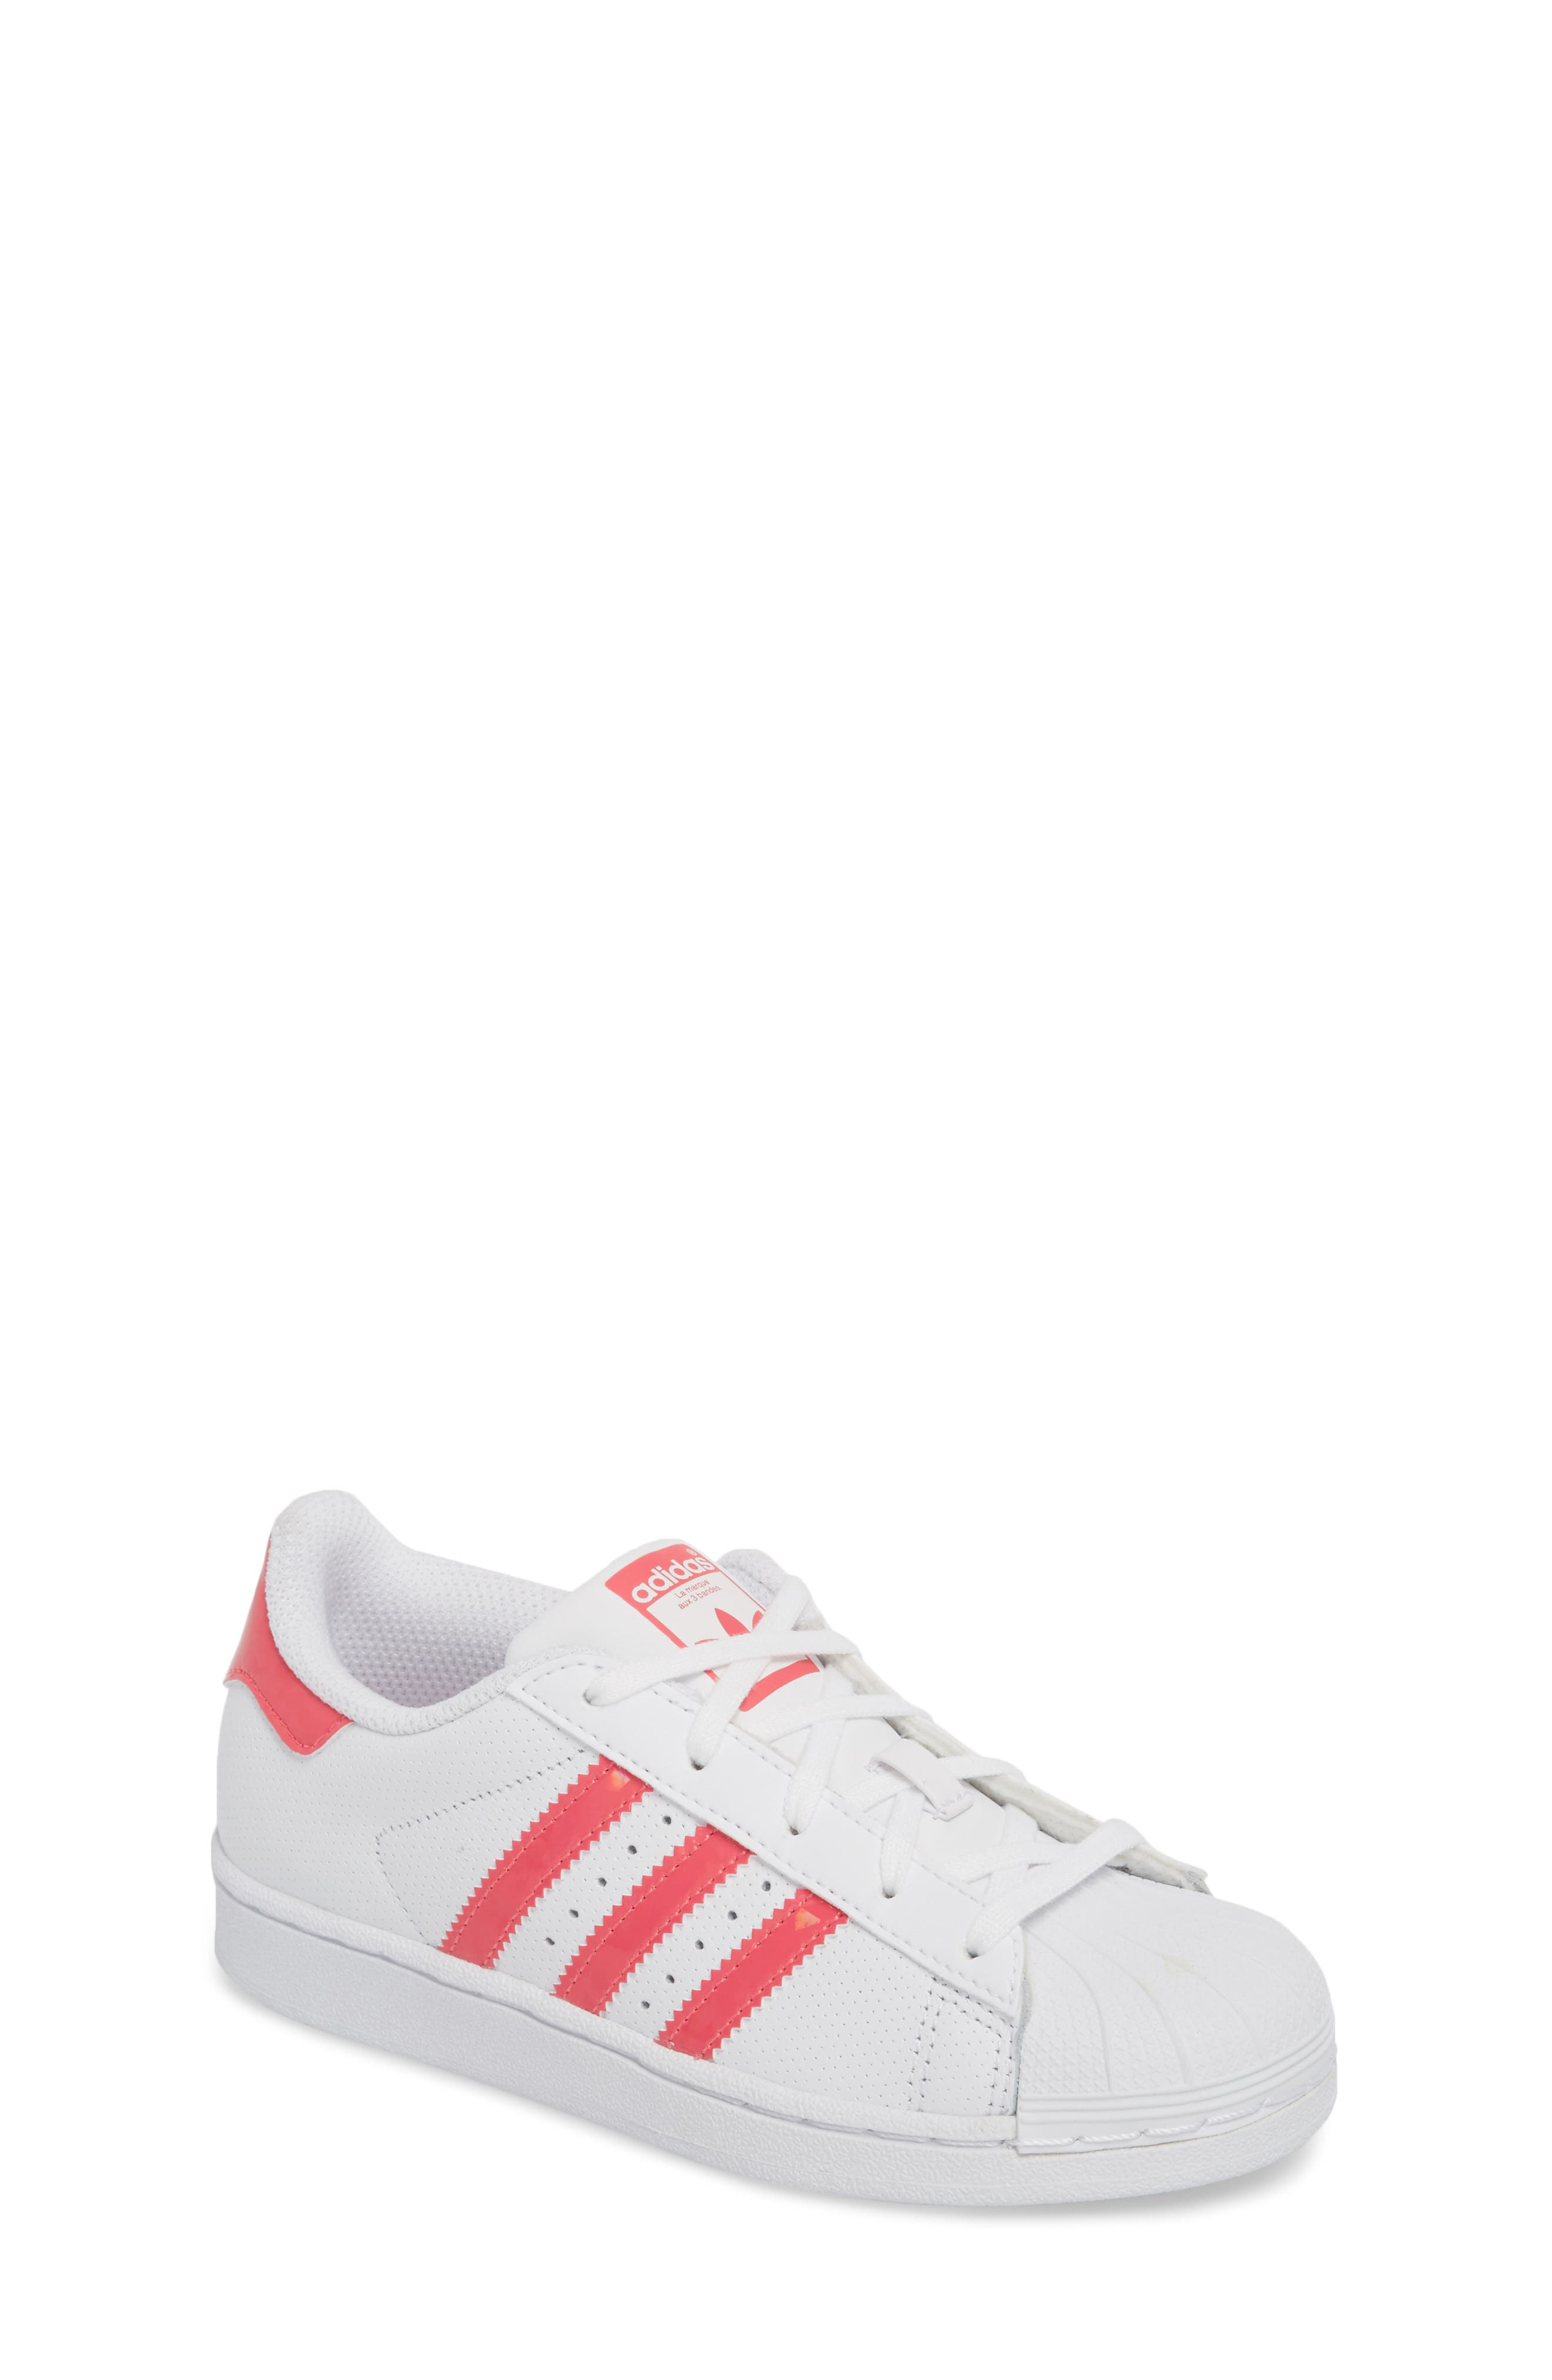 Superstar Perforated Low Top Sneaker,                         Main,                         color,